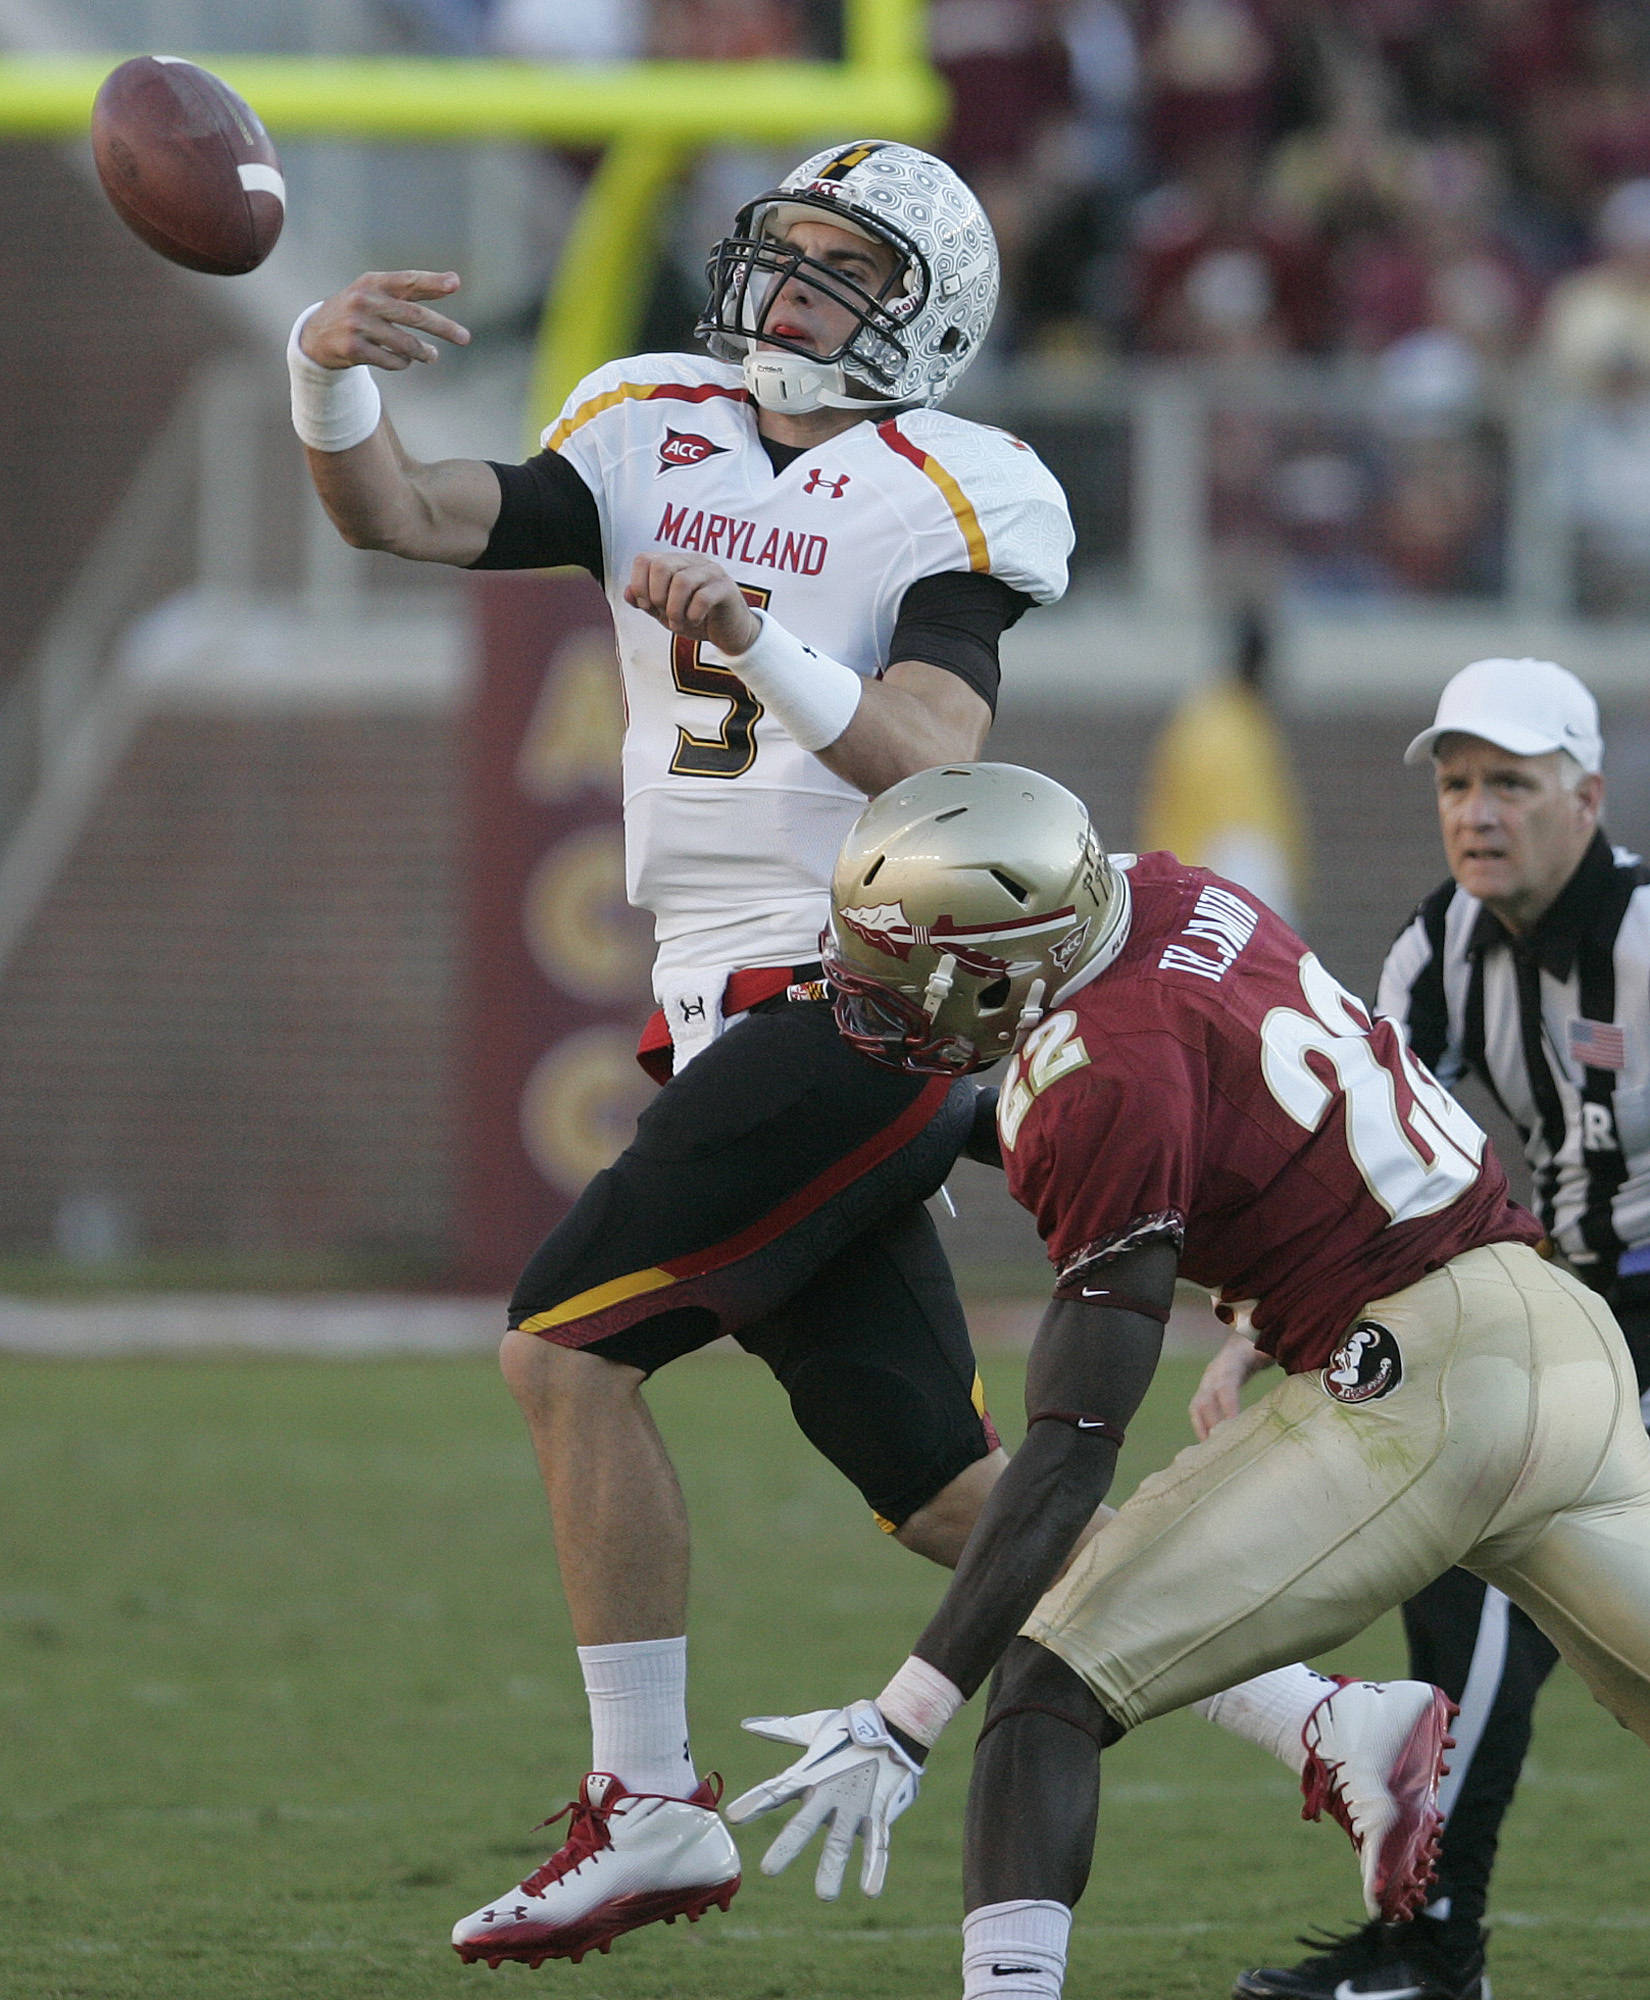 Maryland quarterback Danny O'Brien is almost sacked by Florida State's Telvin Smith in the third quarter. O'Brien was called for grounding. AP Photo/Steve Cannon)